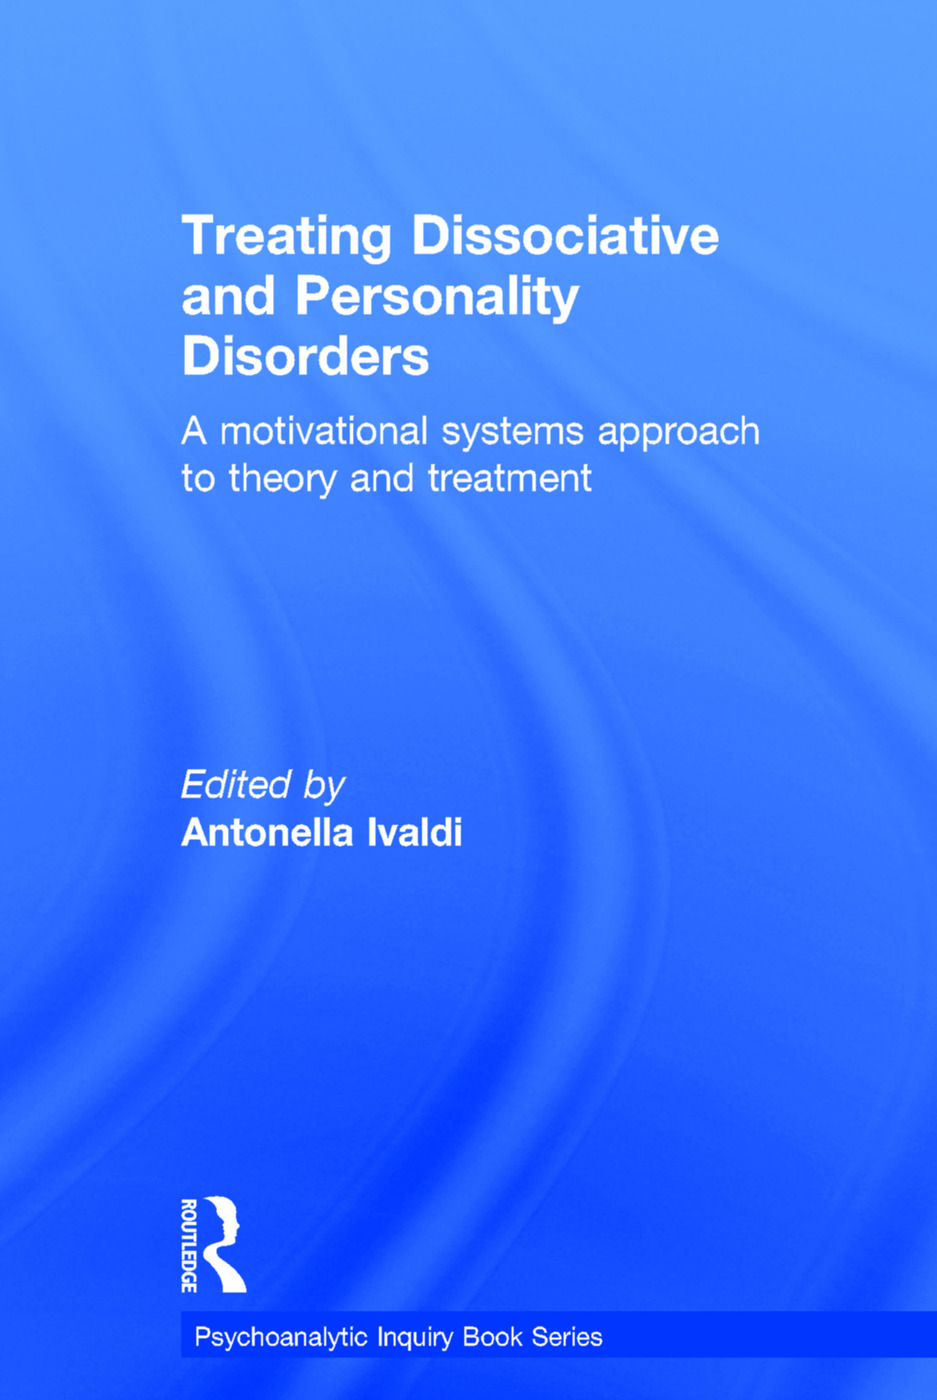 Treating Dissociative and Personality Disorders: A Motivational Systems Approach to Theory and Treatment book cover